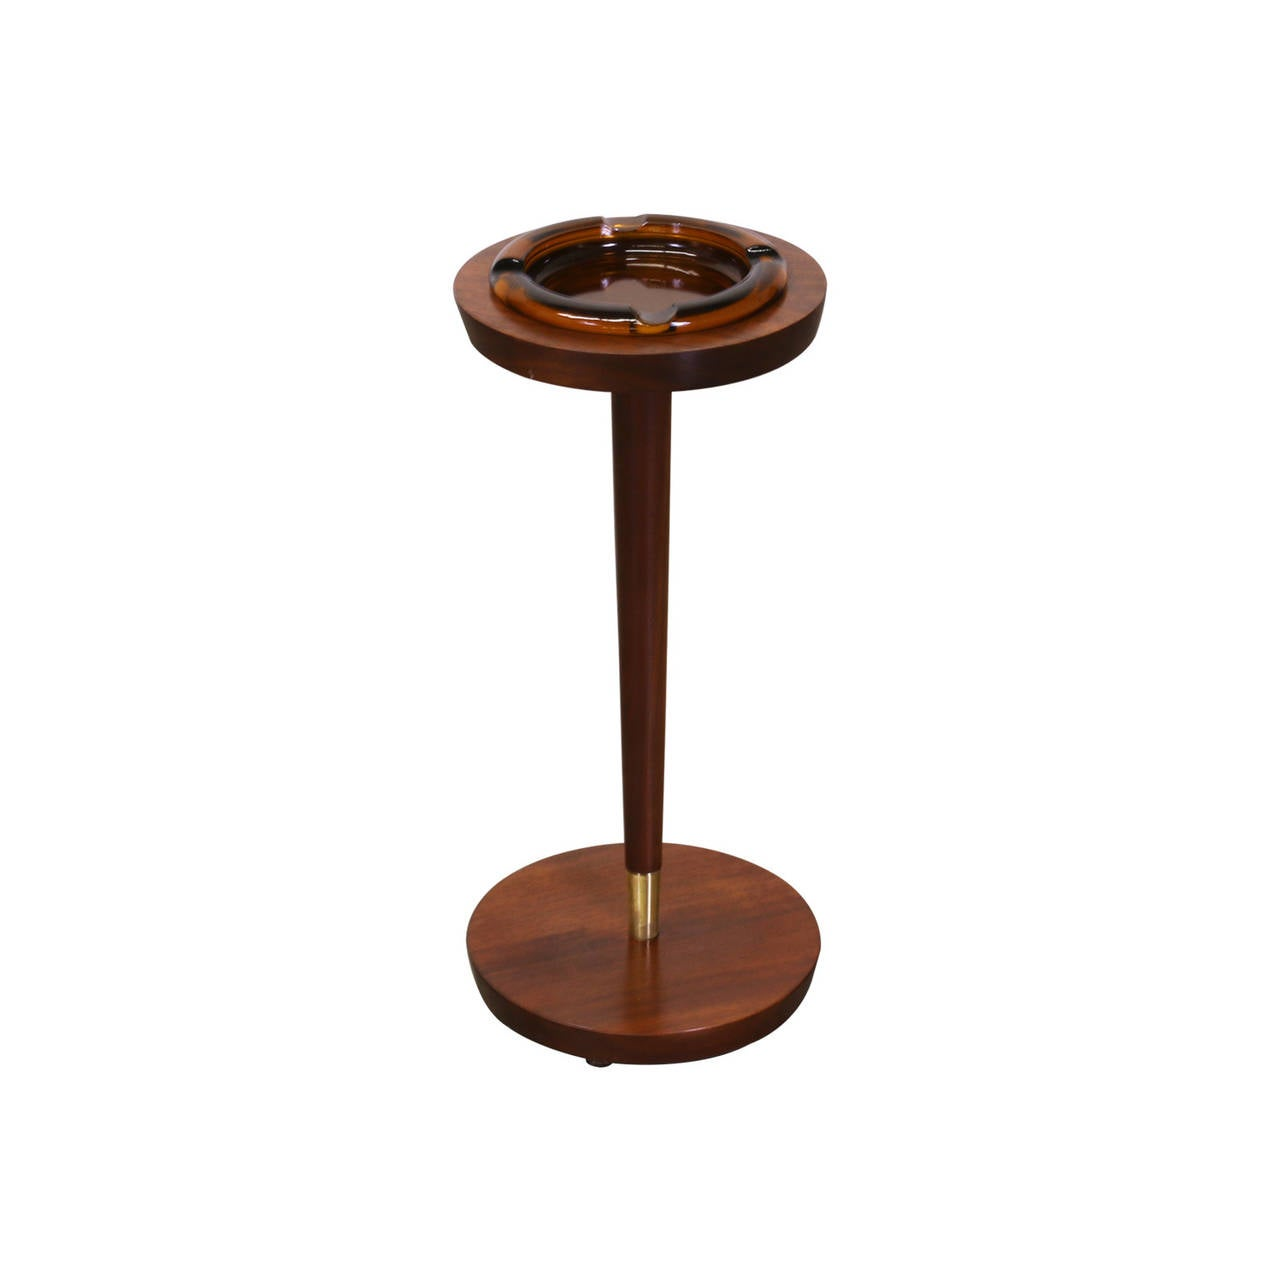 Designer: Unknown Manufacturer: Unknown Period/Style: Mid Century Modern Country: United States Date: 1950's  Dimensions: 22.5″H x 10″D Materials: Walnut, Glass, Brass Condition: Excellent – Newly Refinished Number of Items: 1 ID Number: